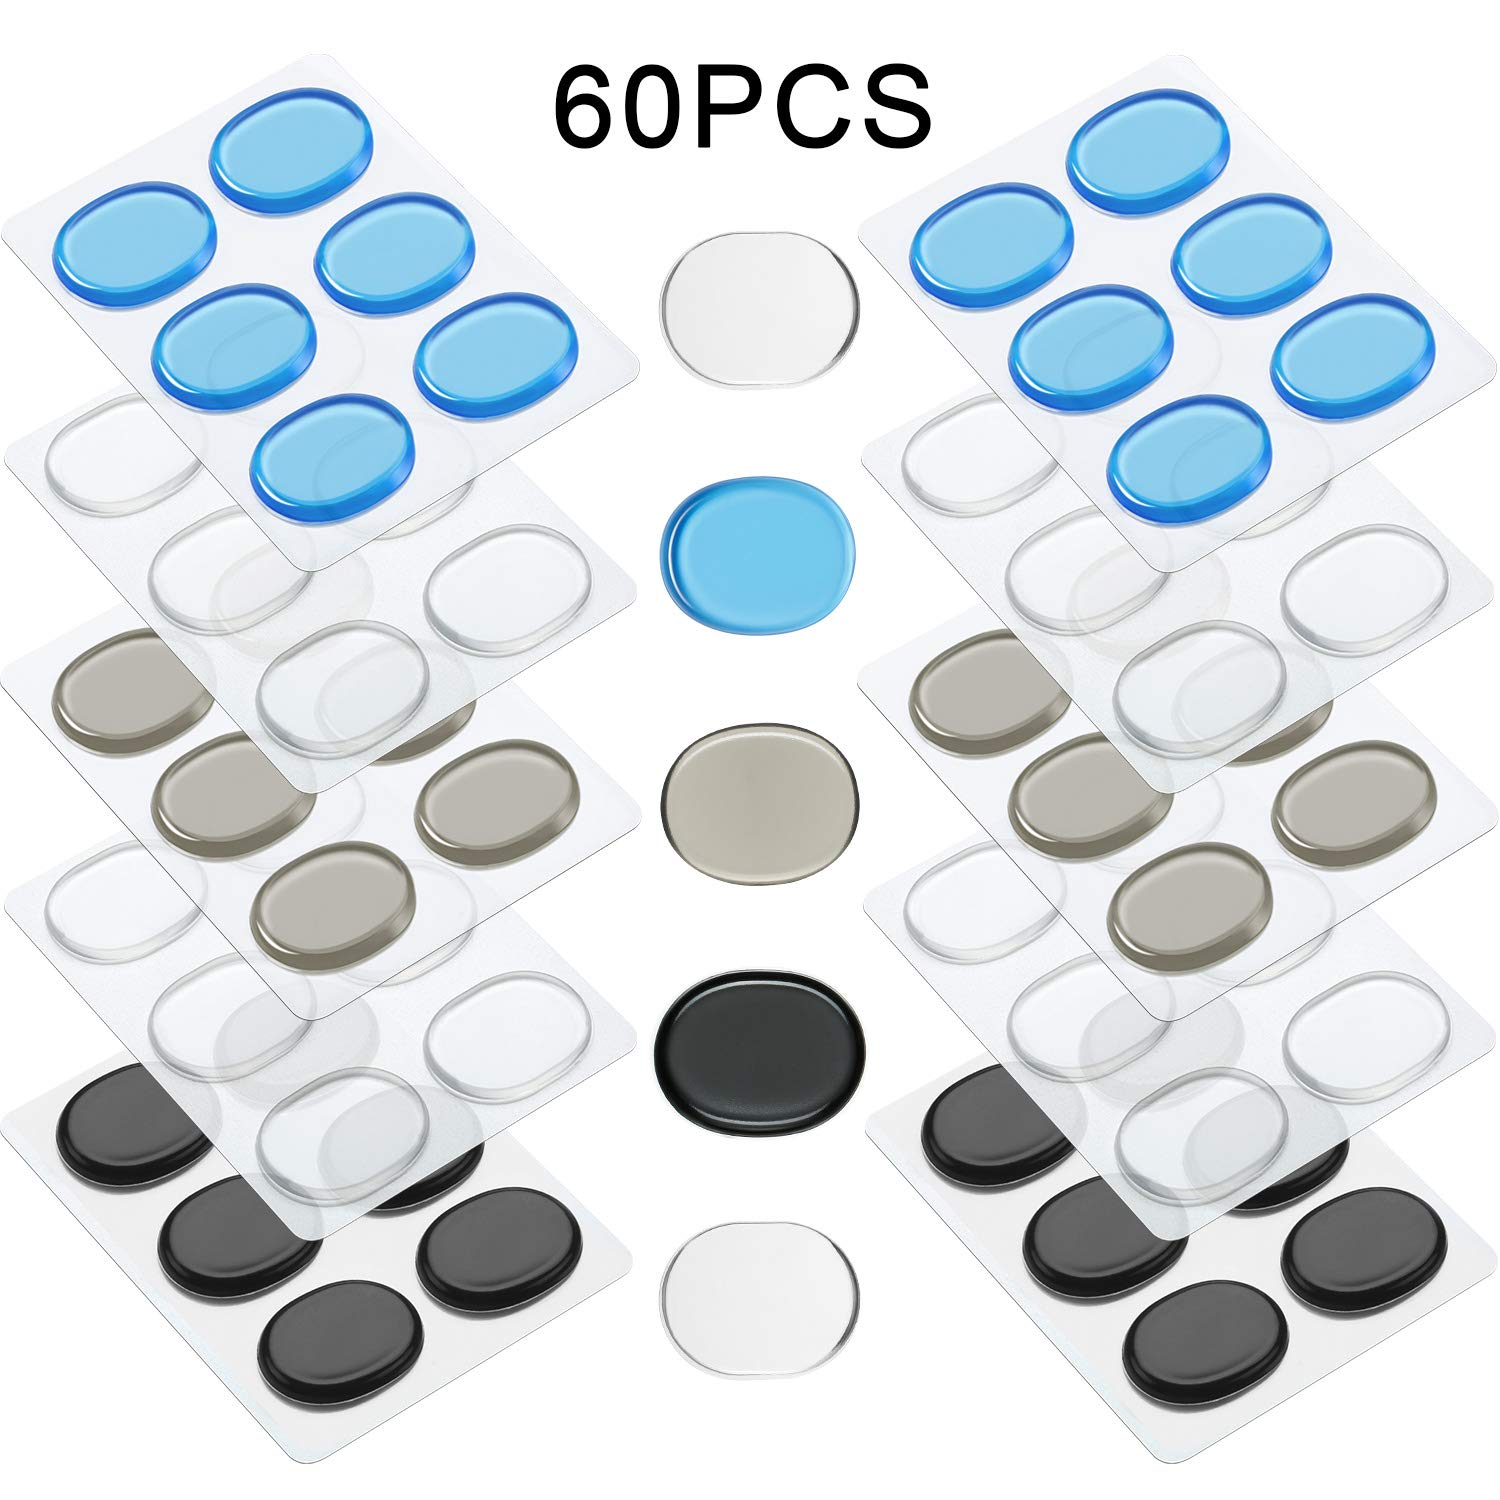 30 Pieces, Color Set 1 Drum Dampeners Gel Pads Silicone Drum Silencers Dampening Gel Pads Non-toxic Soft Drum Dampeners for Drums Tone Control